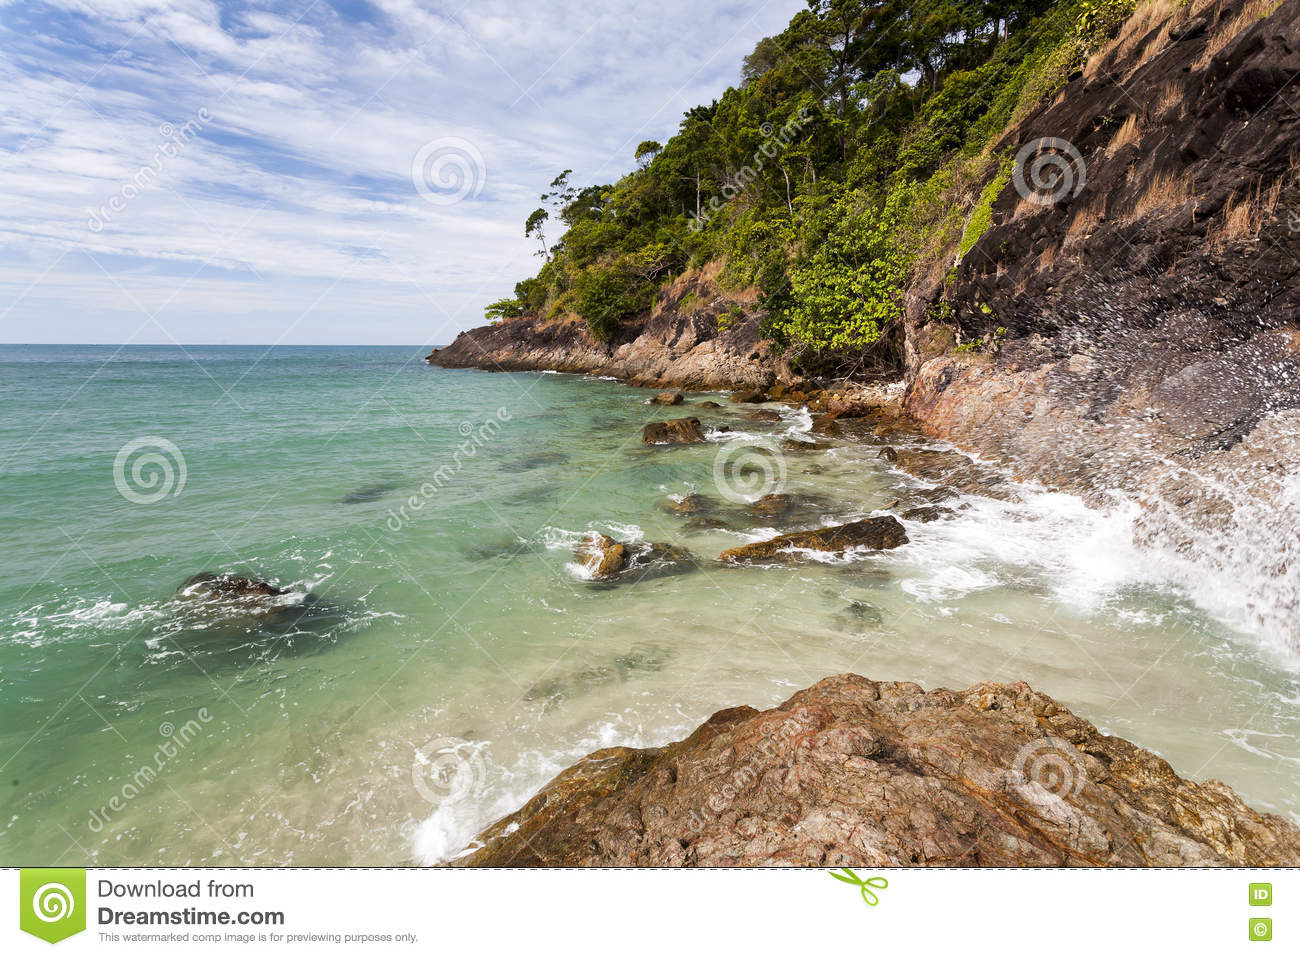 Tropical Island. Thailand Ocean with Cliff